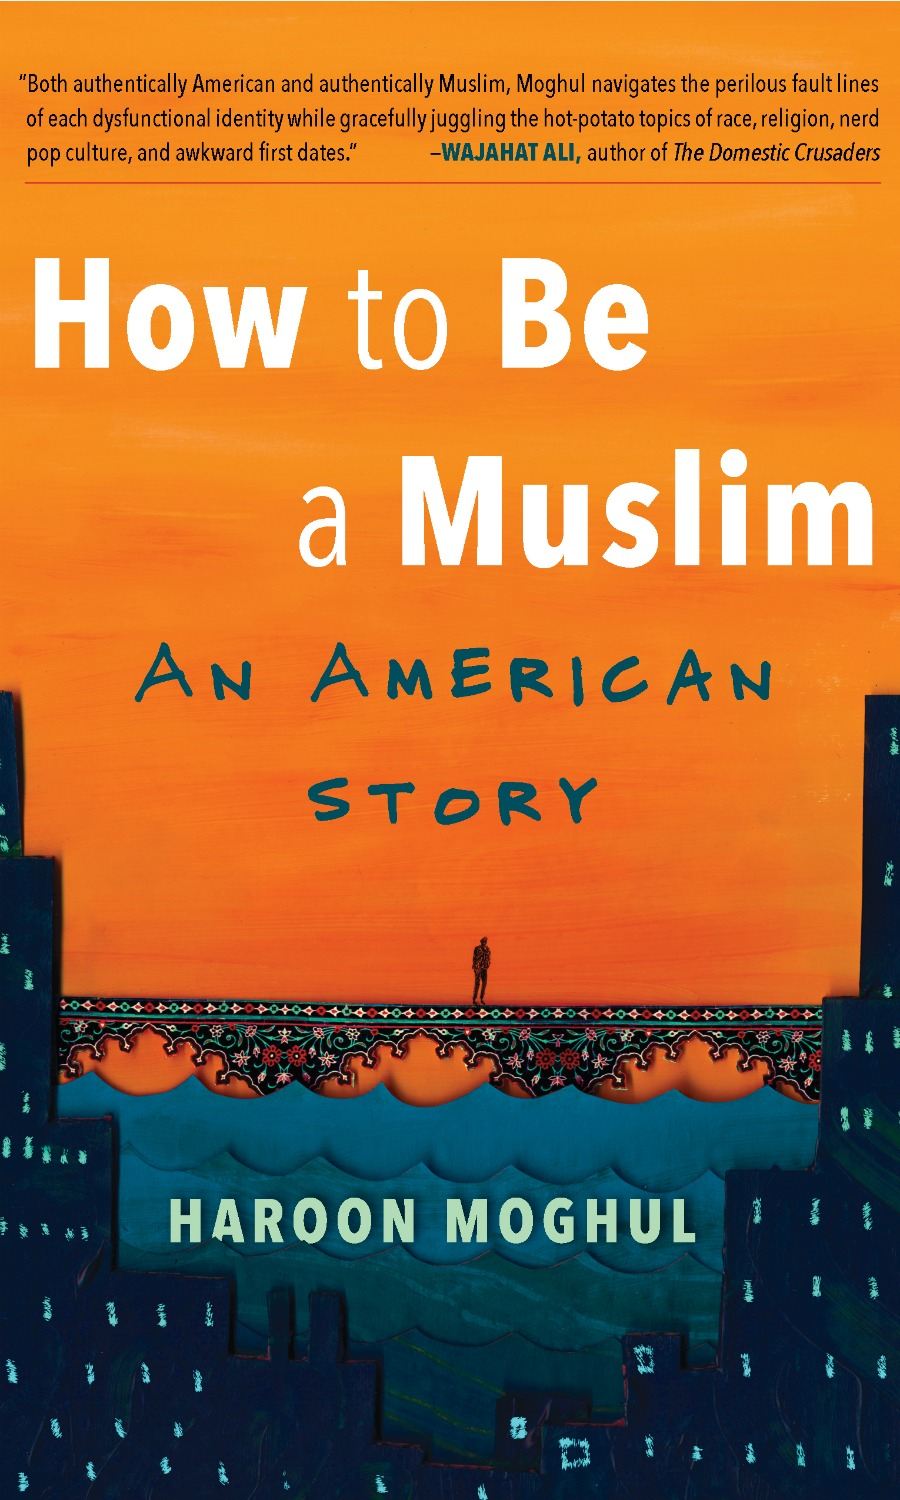 cover image of the book, How to Be a Muslim